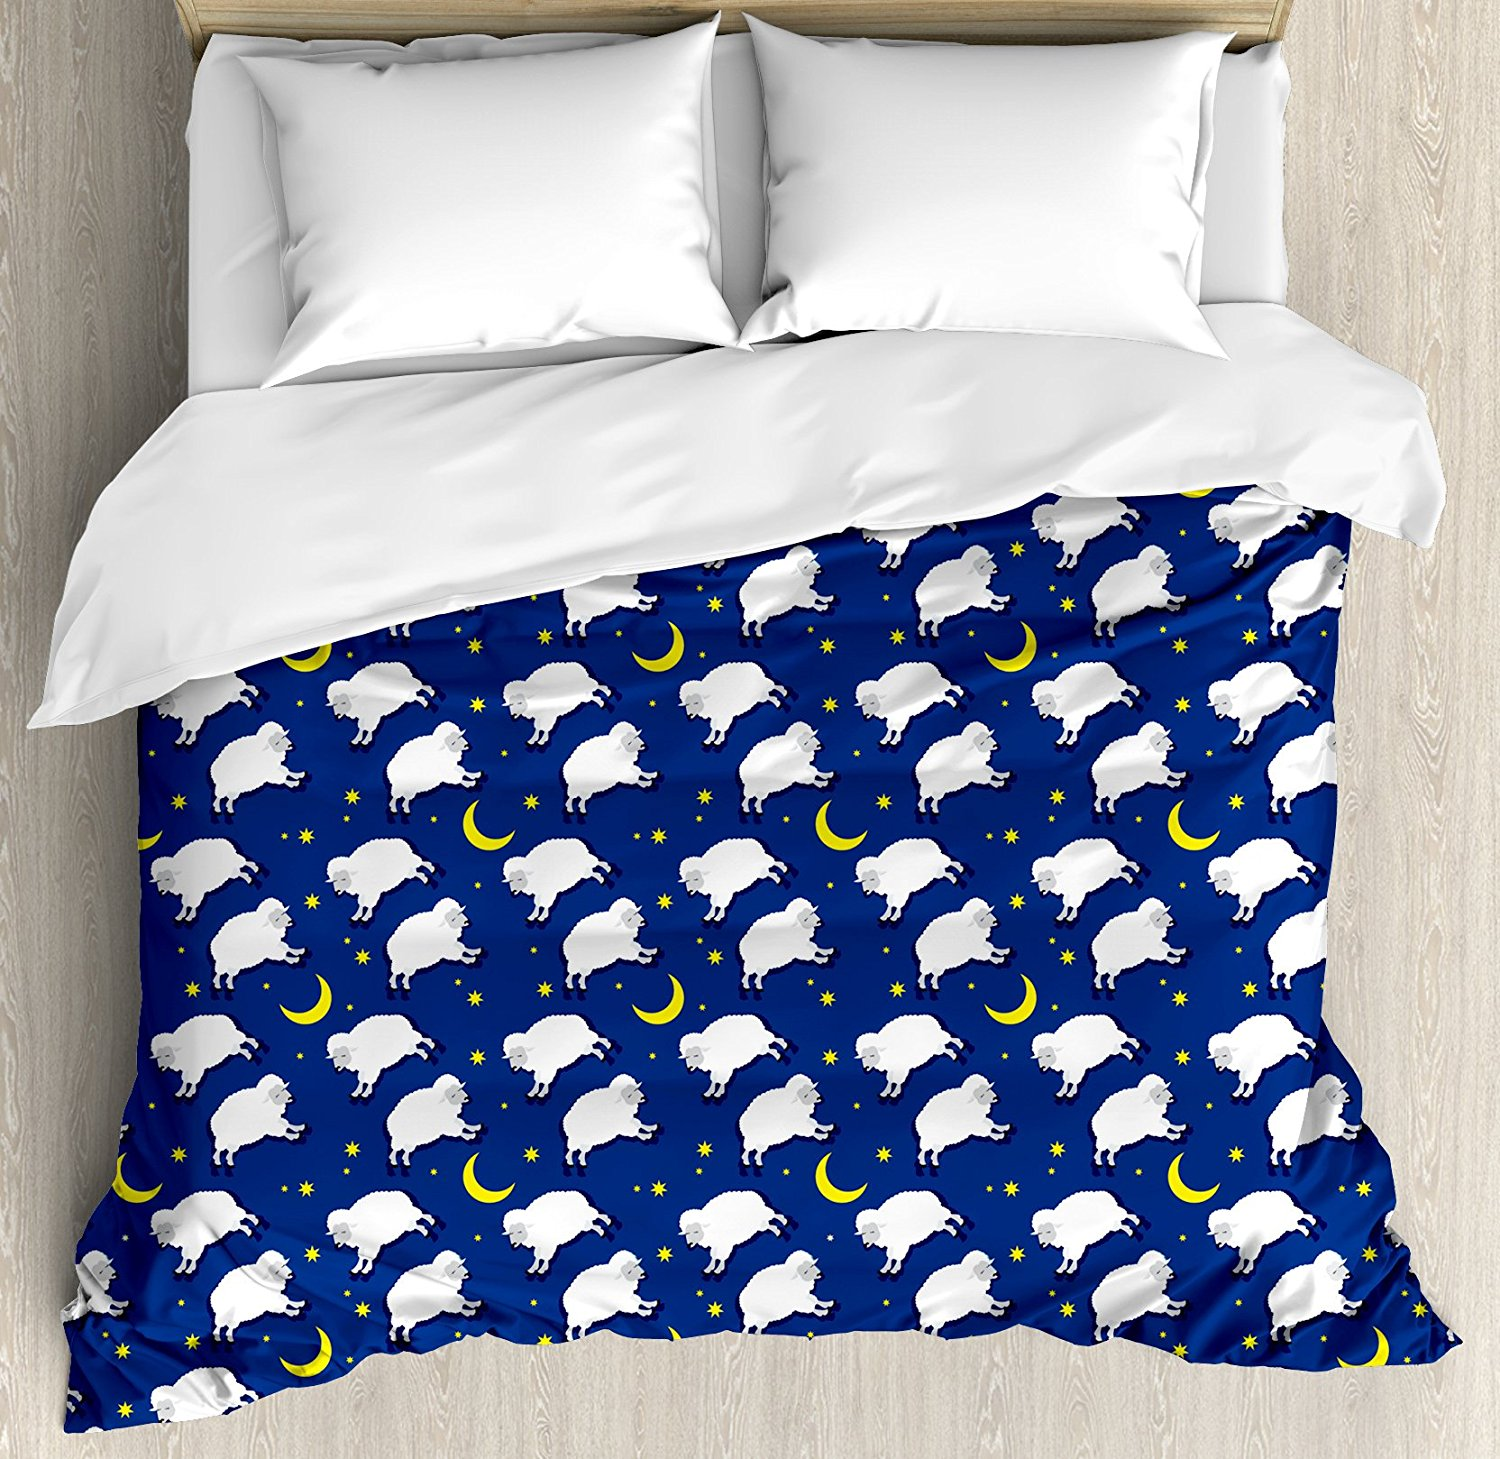 Duvet Cover Set, Cute Sleeping Lambs Pattern with Crescent Moon and Stars Bed Children Print, 4 Piece Bedding Set